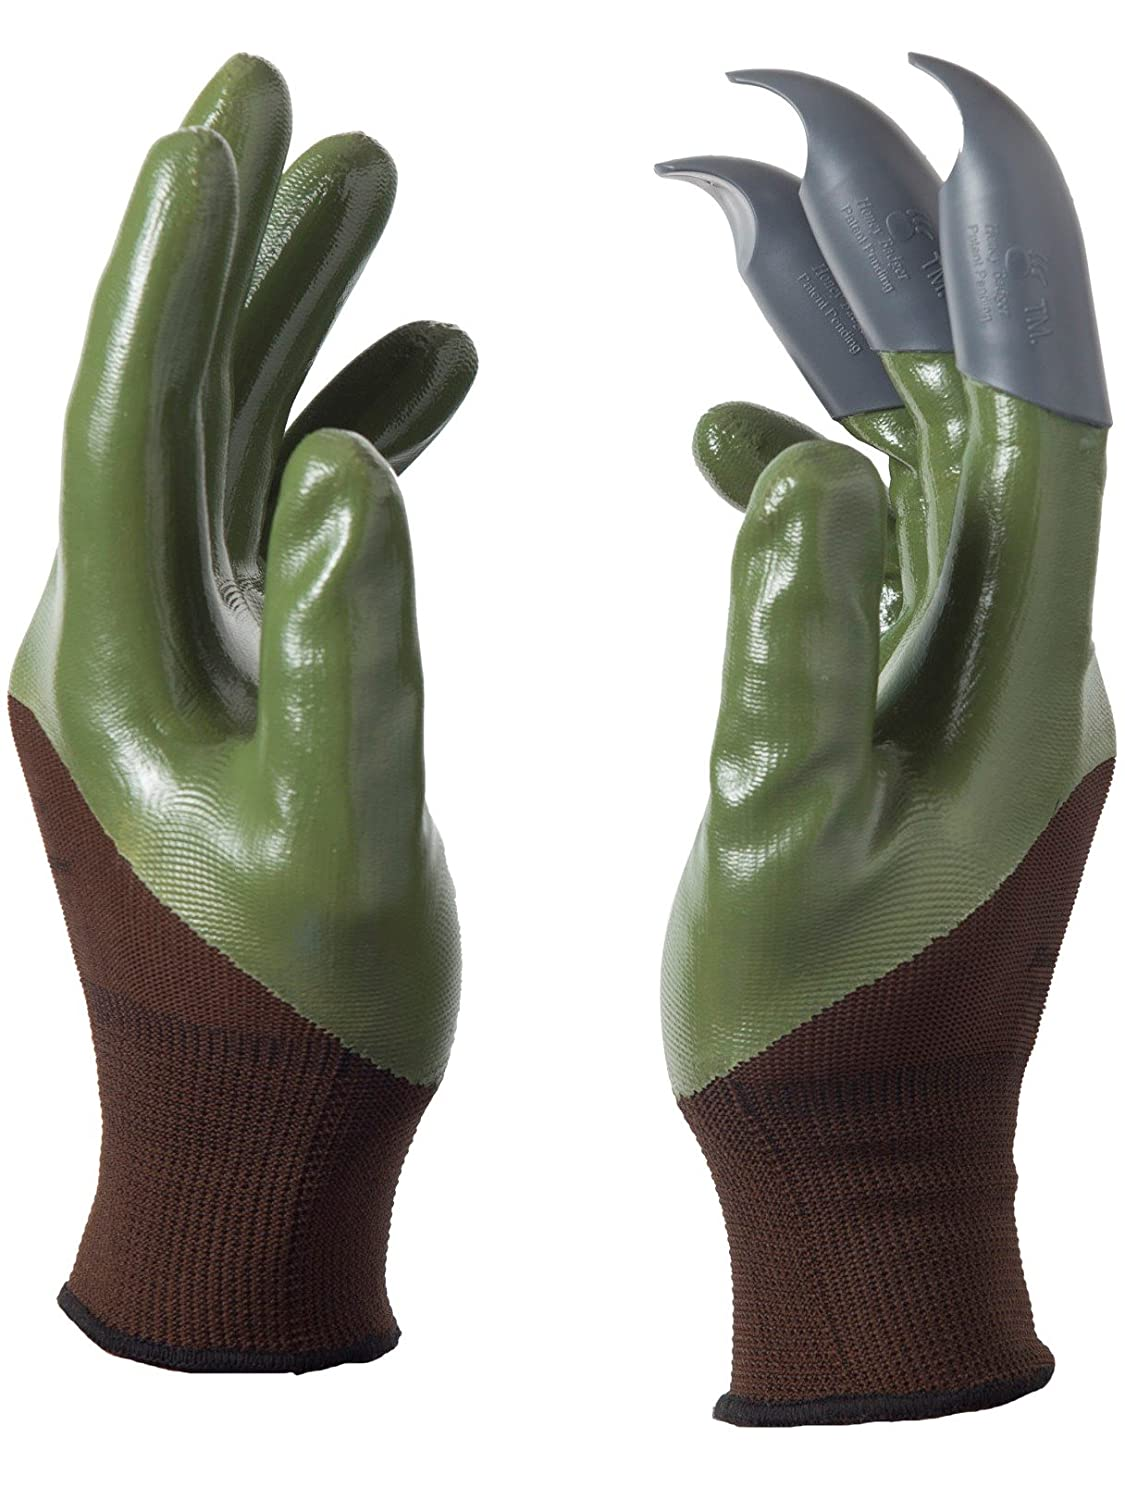 Garden Genie -Honey Badger garden gloves- all women's sizes & colors - Premium product- Holiday Promotion